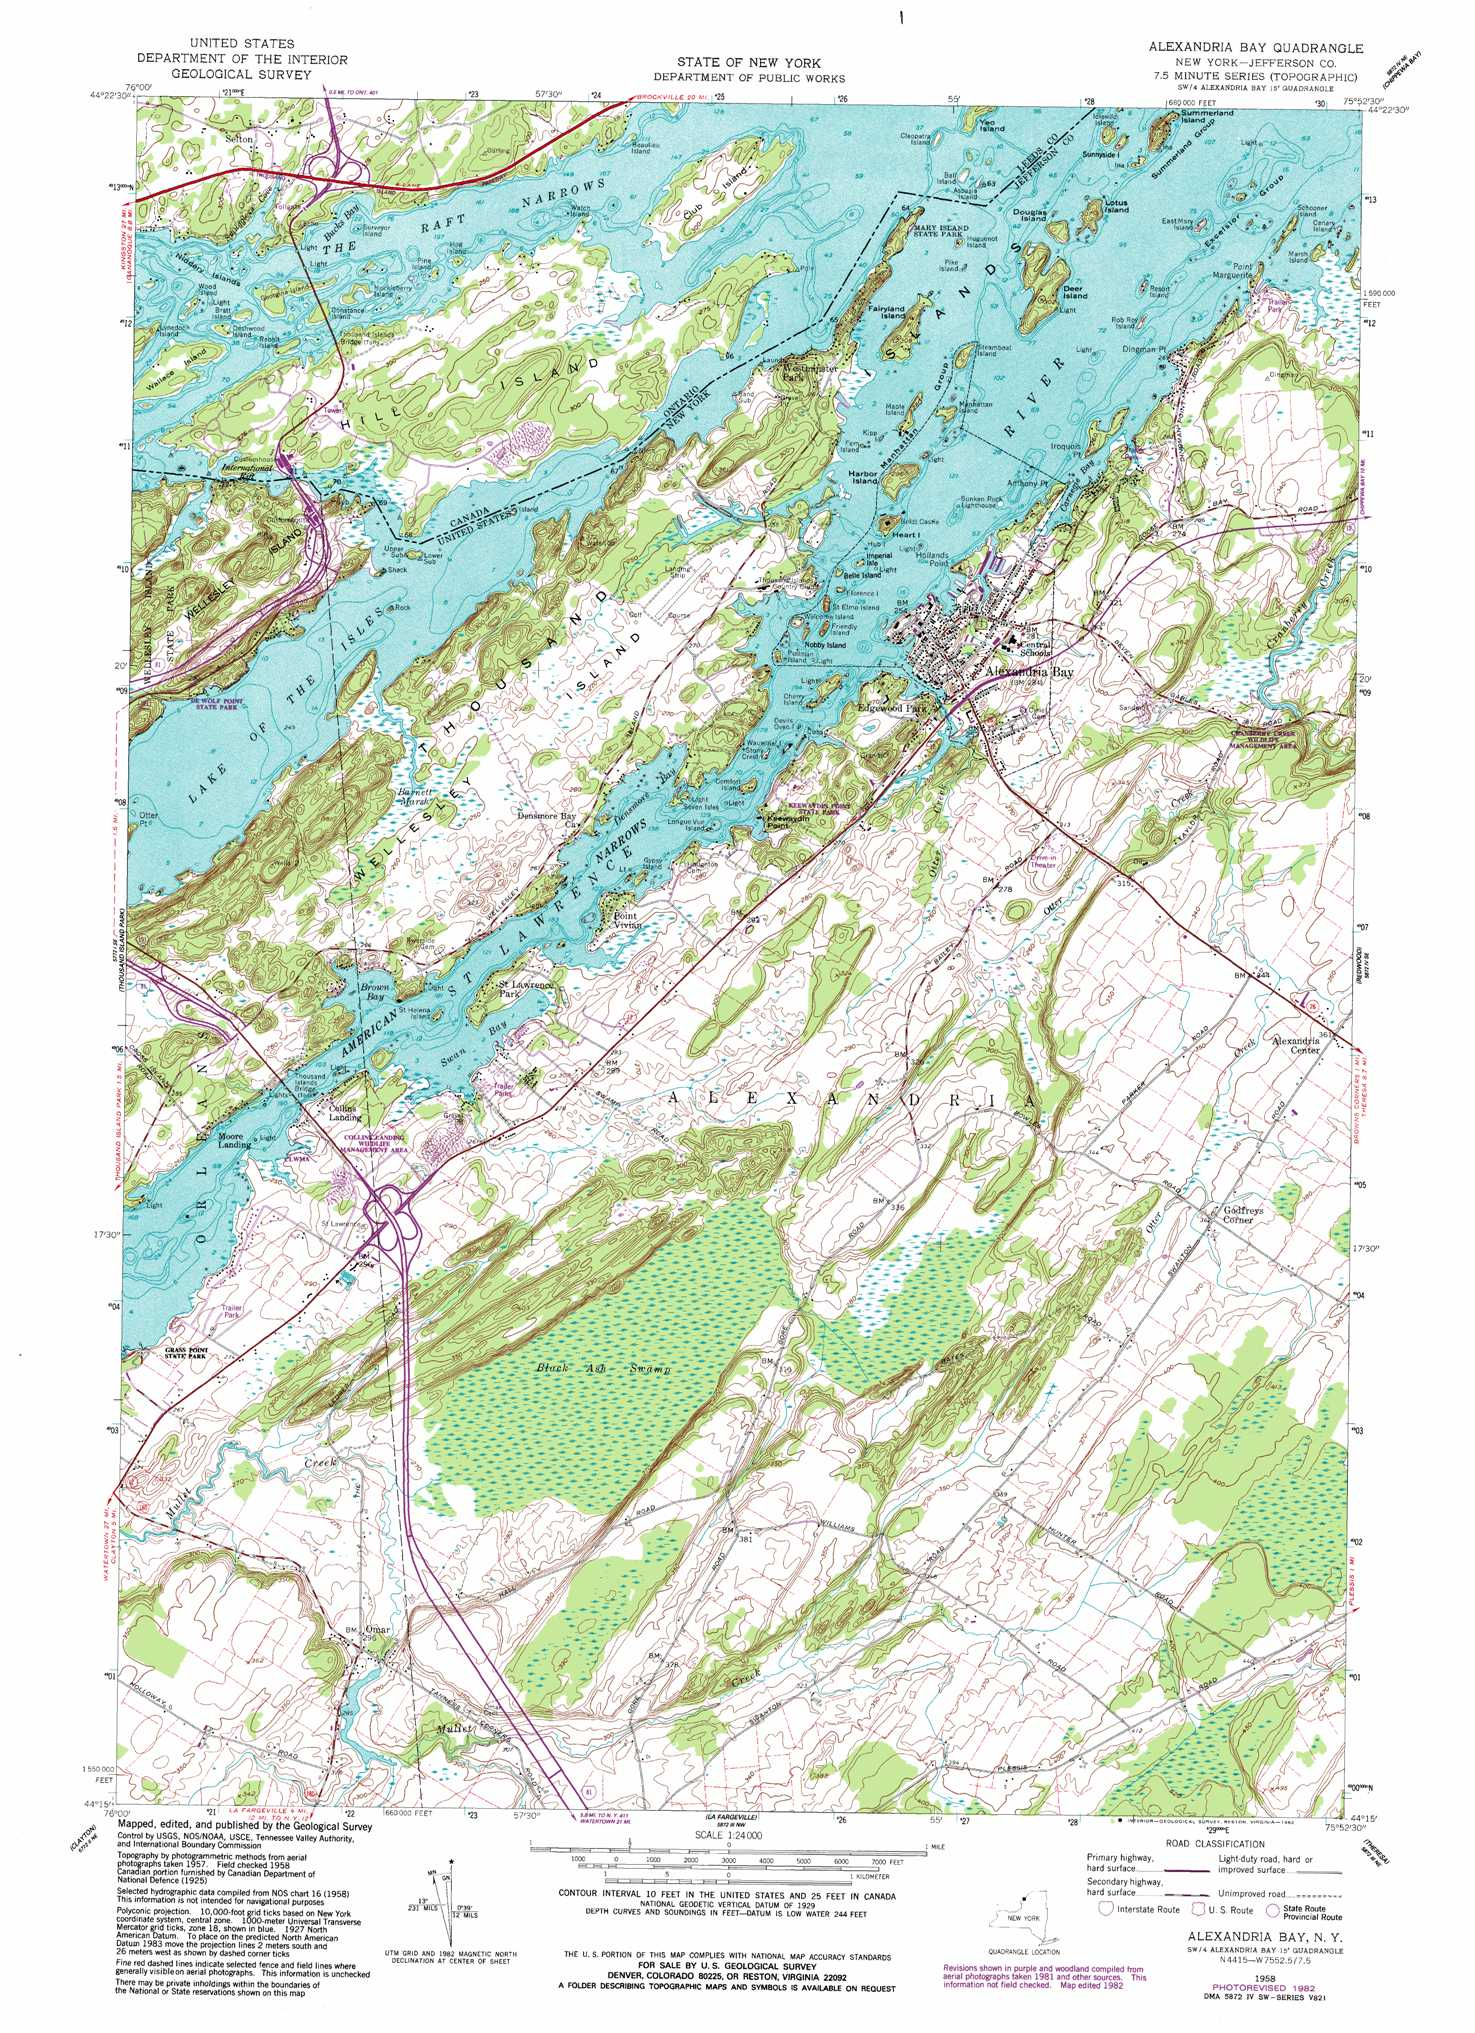 Alexandria Bay Topographic Map NY USGS Topo Quad C - Nyc map topographic